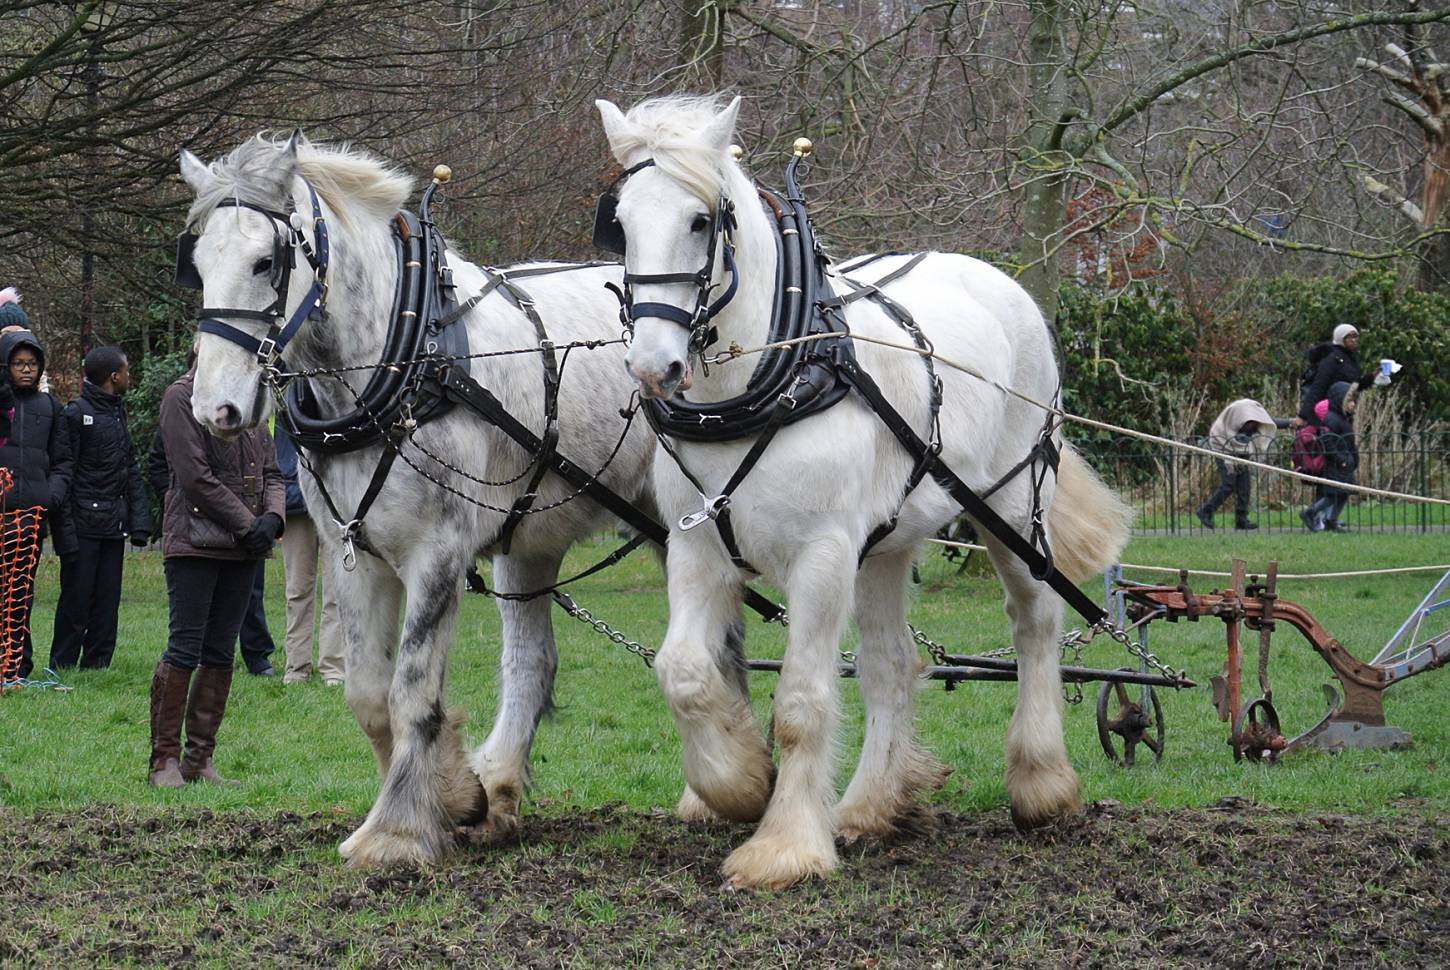 Shire horses, Heath and Nobby with ploughman Tom Nixon from <a href='http://www.operationcentaur.com/' target='_blank'>Operation Centaur</a> come to plough the <a href='https://twitter.com/ruskinparkse5?lang=en' target='_blank'>Ruskin Park</a> wheat patch. Image: Marie Cullen - 12:11pm&nbsp;9<sup>th</sup>&nbsp;Feb.&nbsp;'18